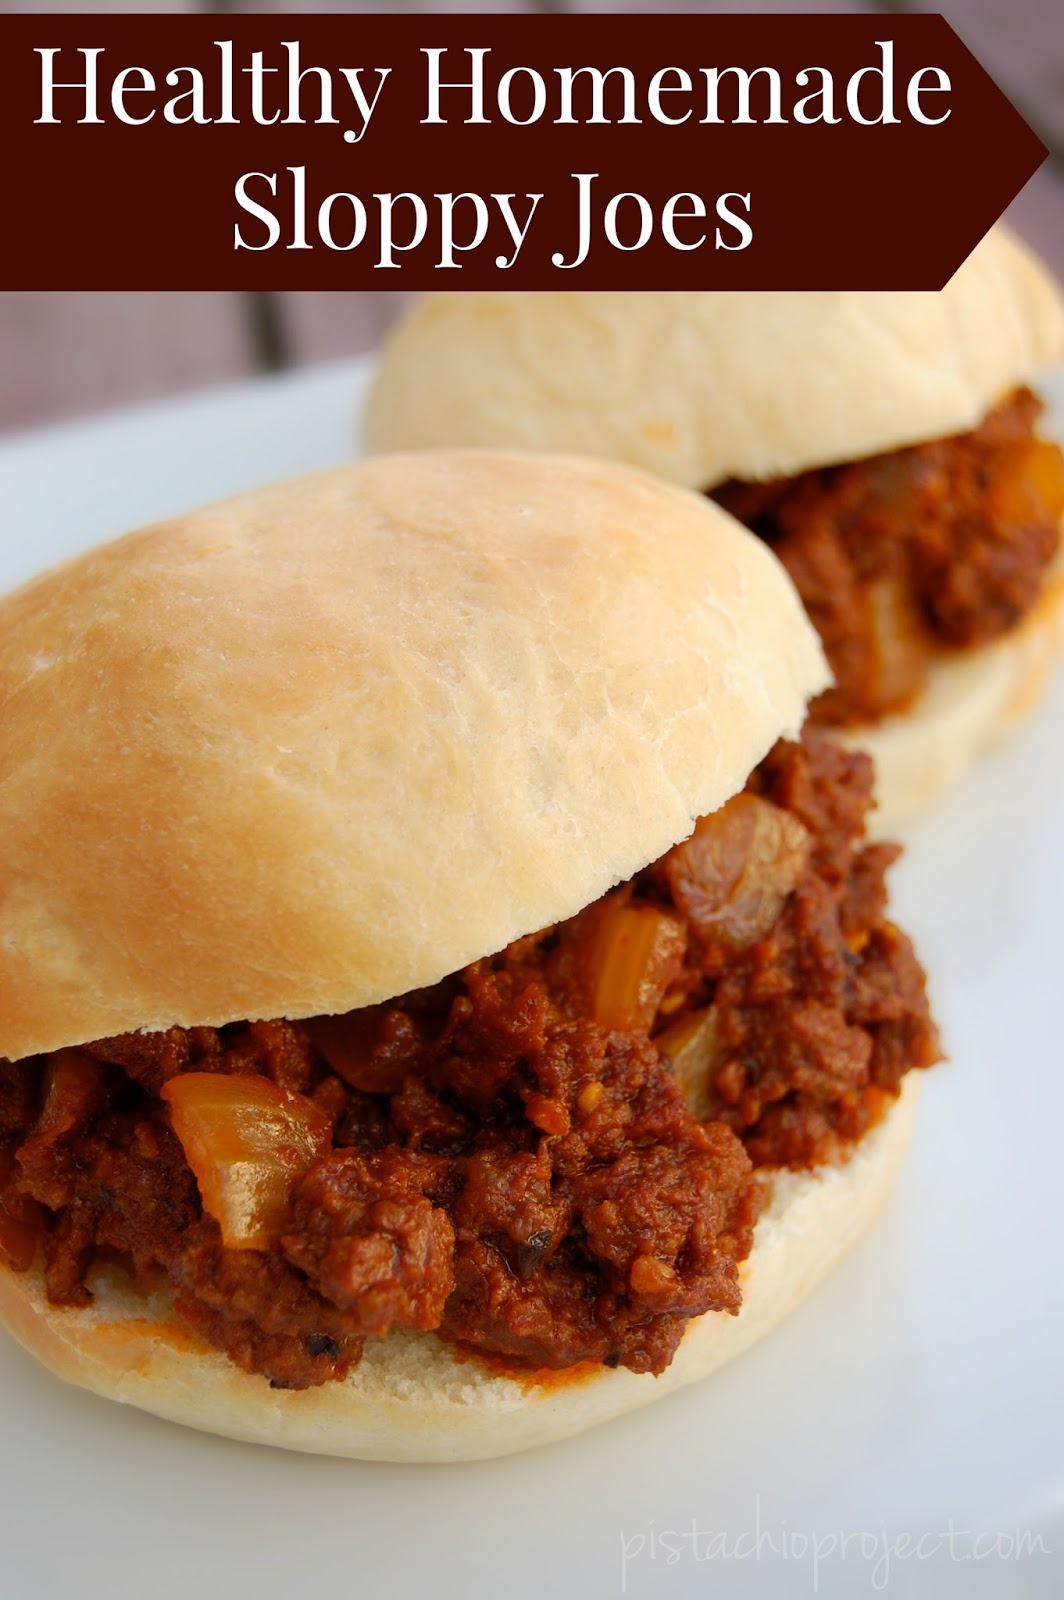 Healthy Homemade Sloppy Joes! No more bpa lined cans, no more sloppy joes full of weird ingredients! These sloppy joes are healthy and they taste amazing! #sloppyjoes #quickdinner #realfood #dinner #easy